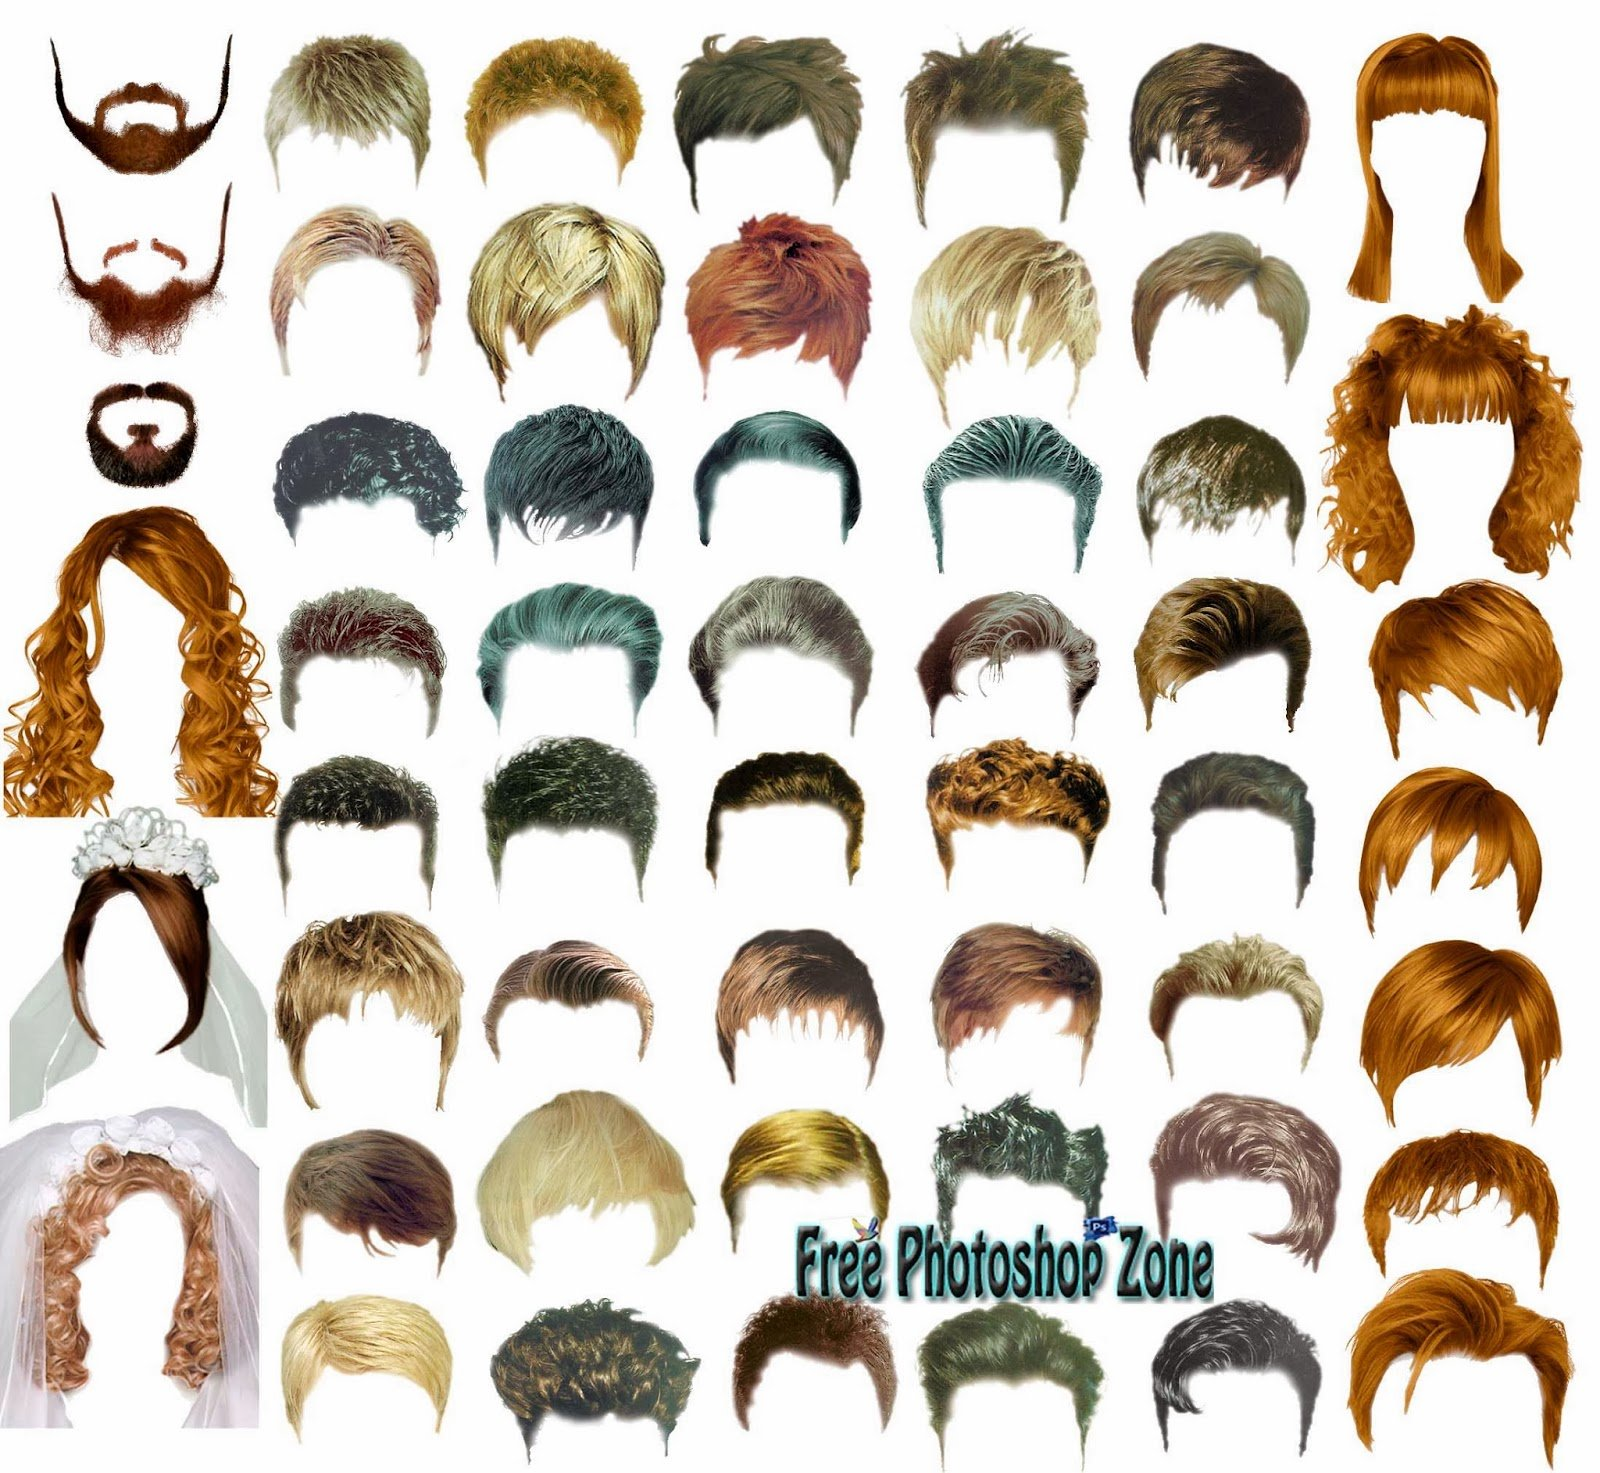 The Best Hair Styles Psd Template Free Photoshop Zone Pictures